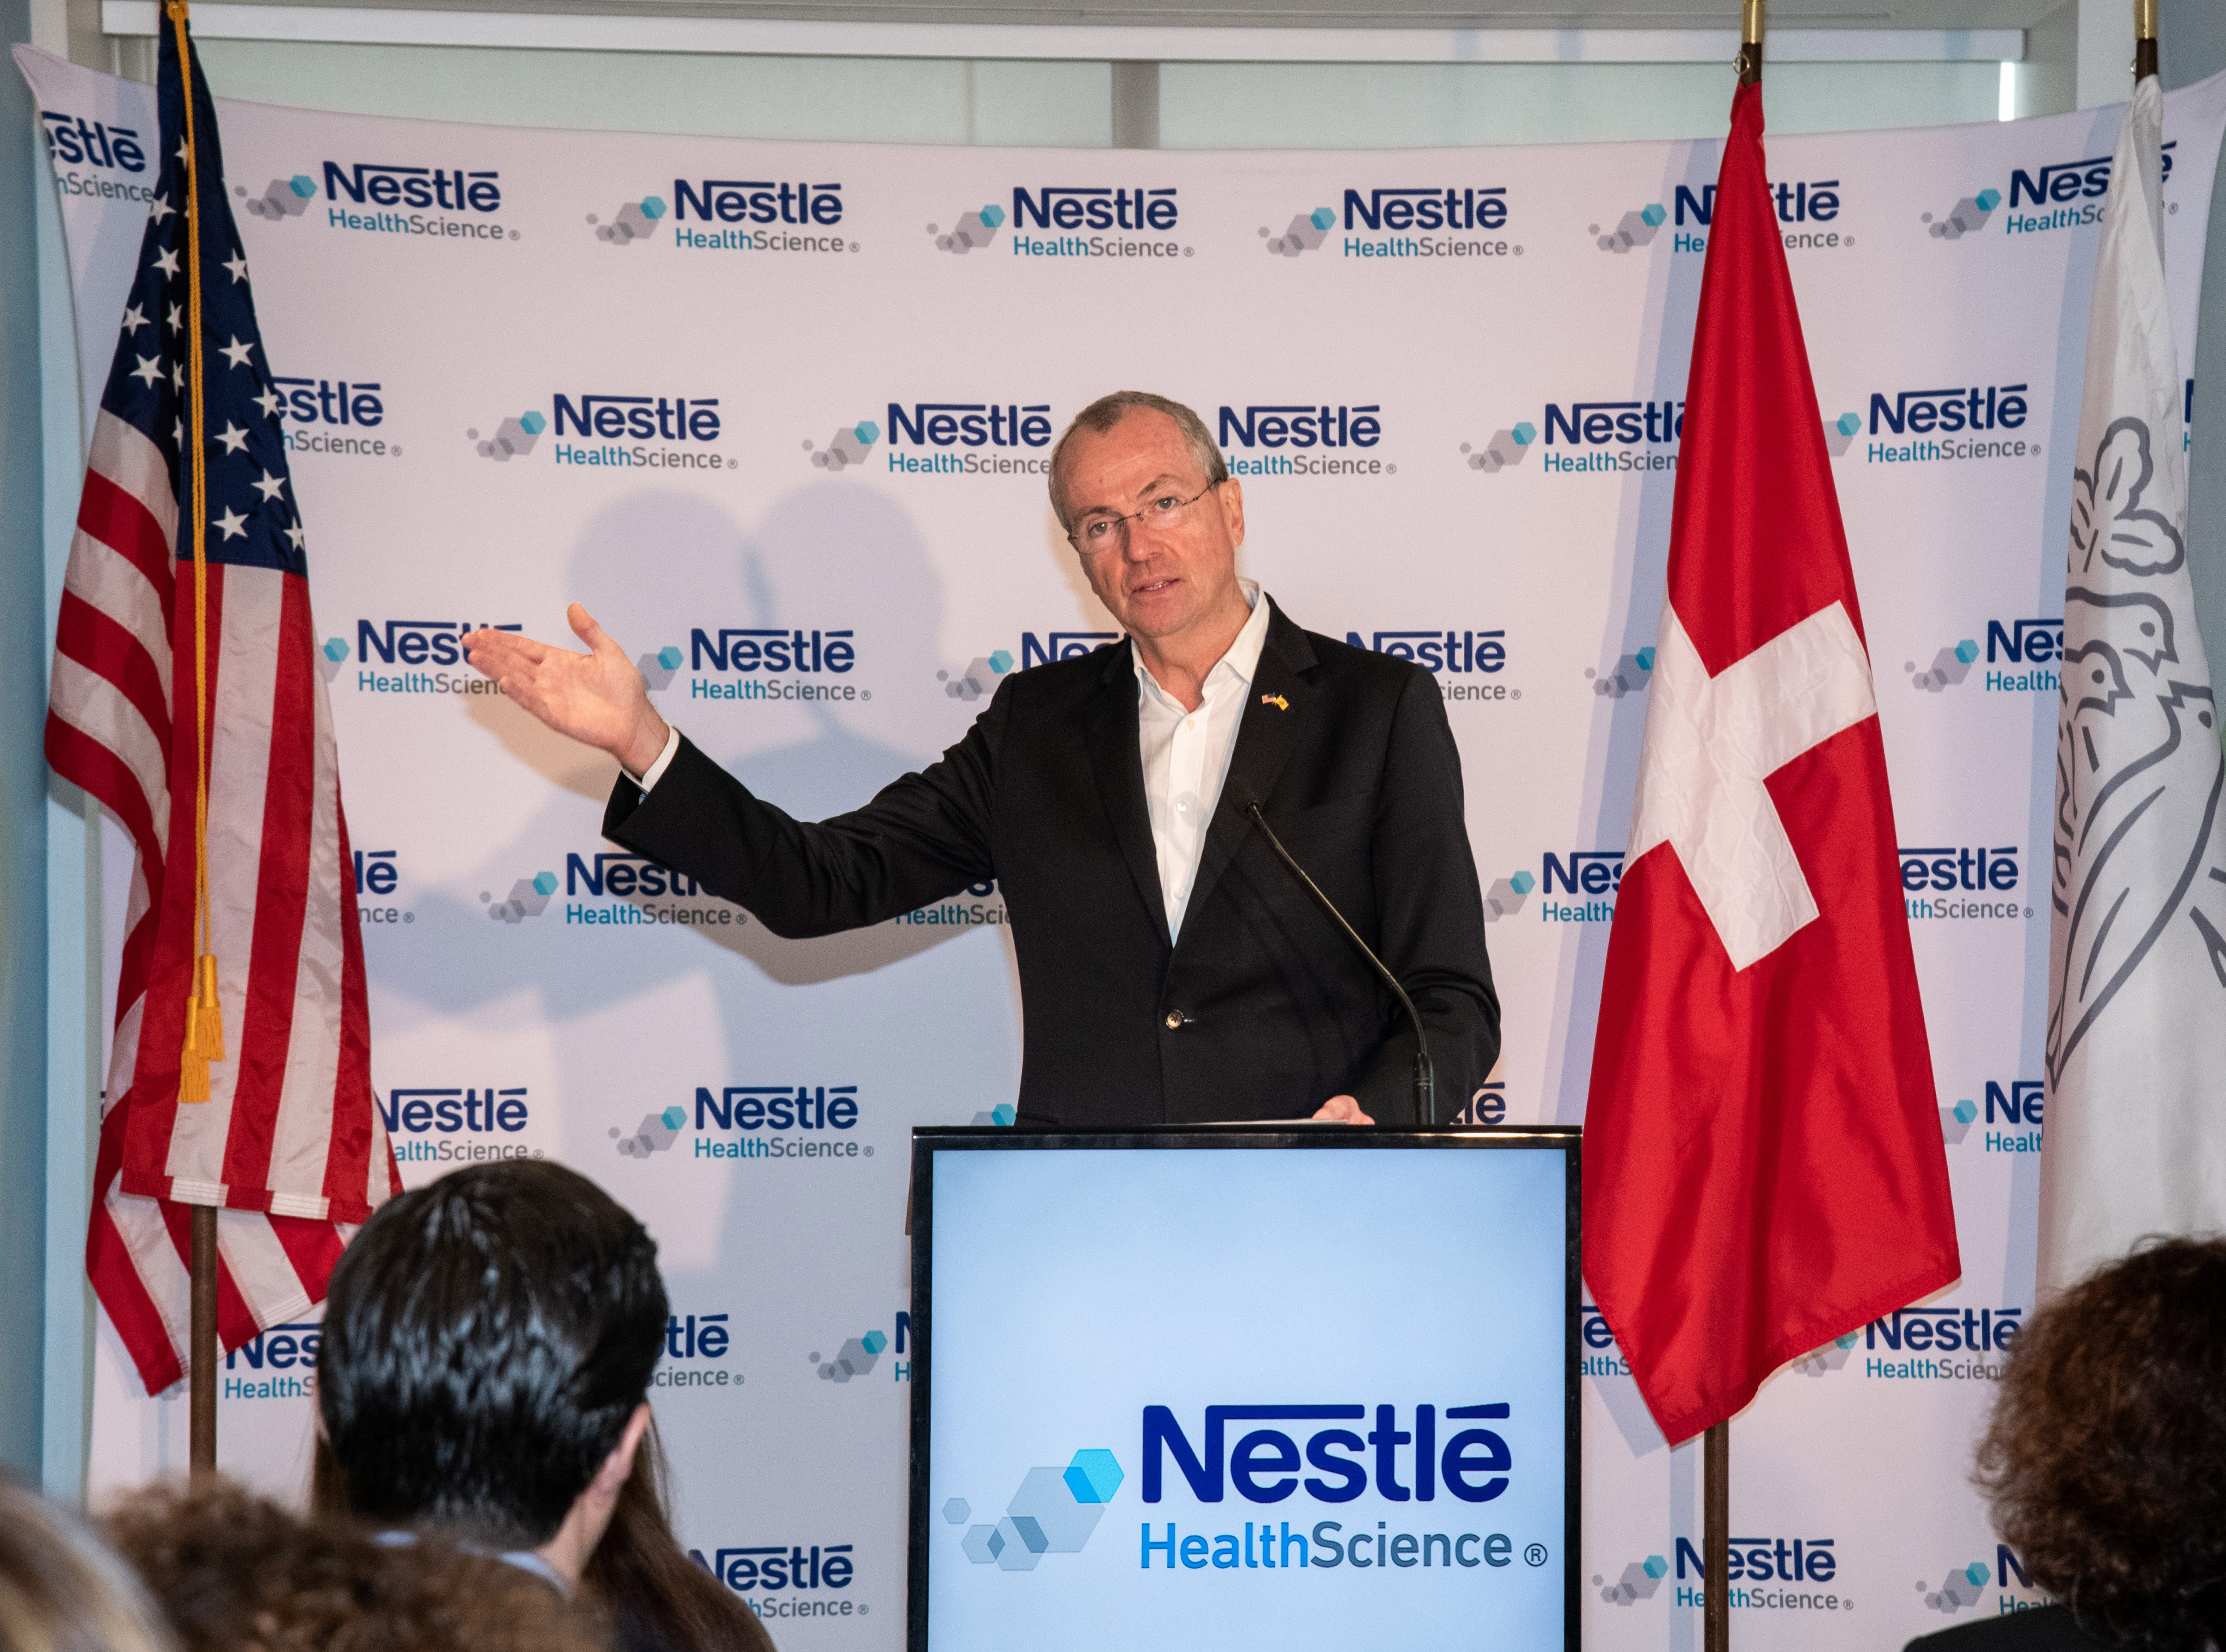 New Jersey Governor Phil Murphy addresses guests at the inauguration of Nestlé Health Science's Product Technology Center on Monday, Dec. 3, 2018 in Bridgewater, N.J. (Charles Sykes/AP Images for Nestlé)